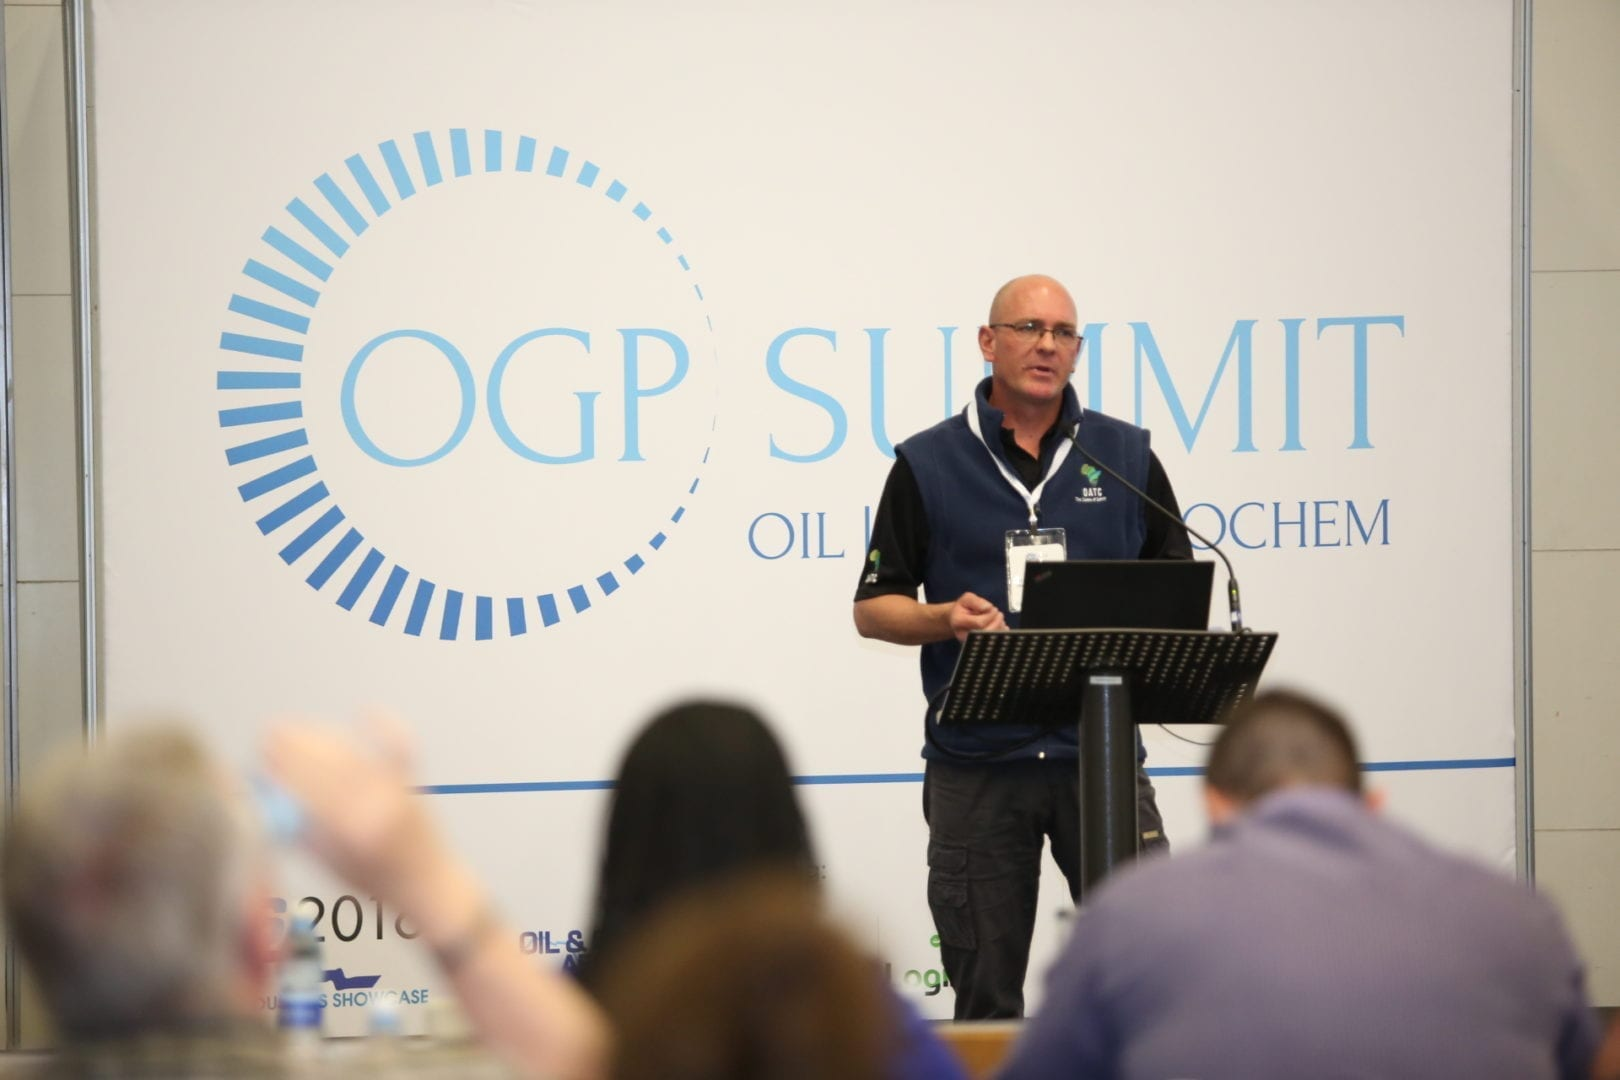 Oil and gas conference brings global energy experts to the Mother city